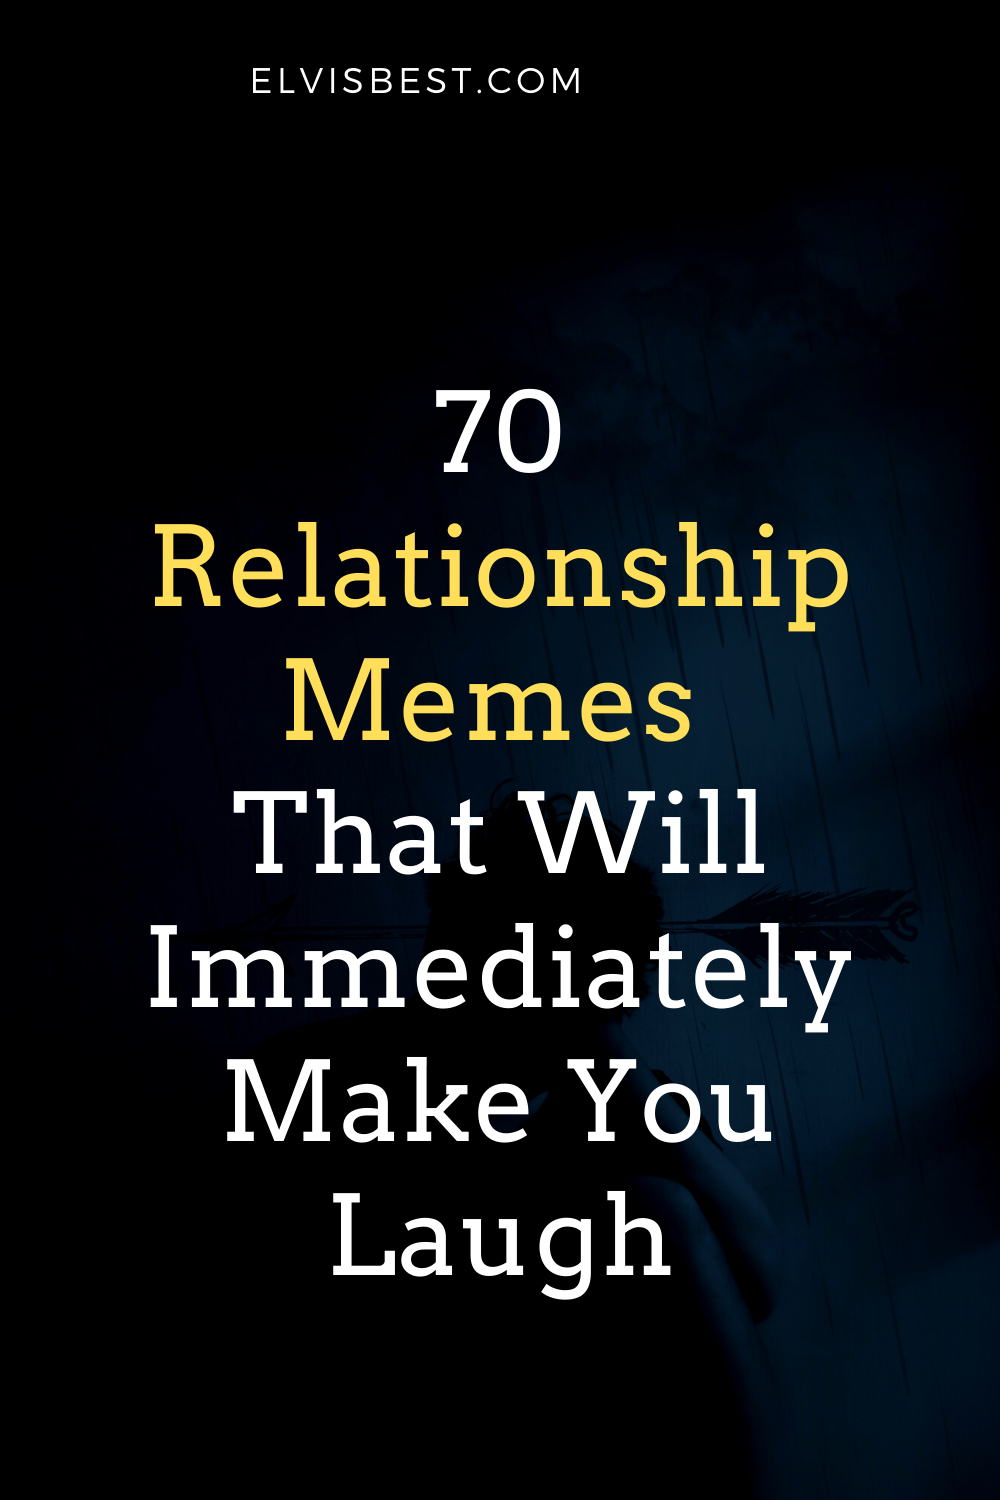 70 Relationship Memes That Will Immediately Make You Laugh Relationship Memes Quotes About Love And Relationships Funny Relationship Memes